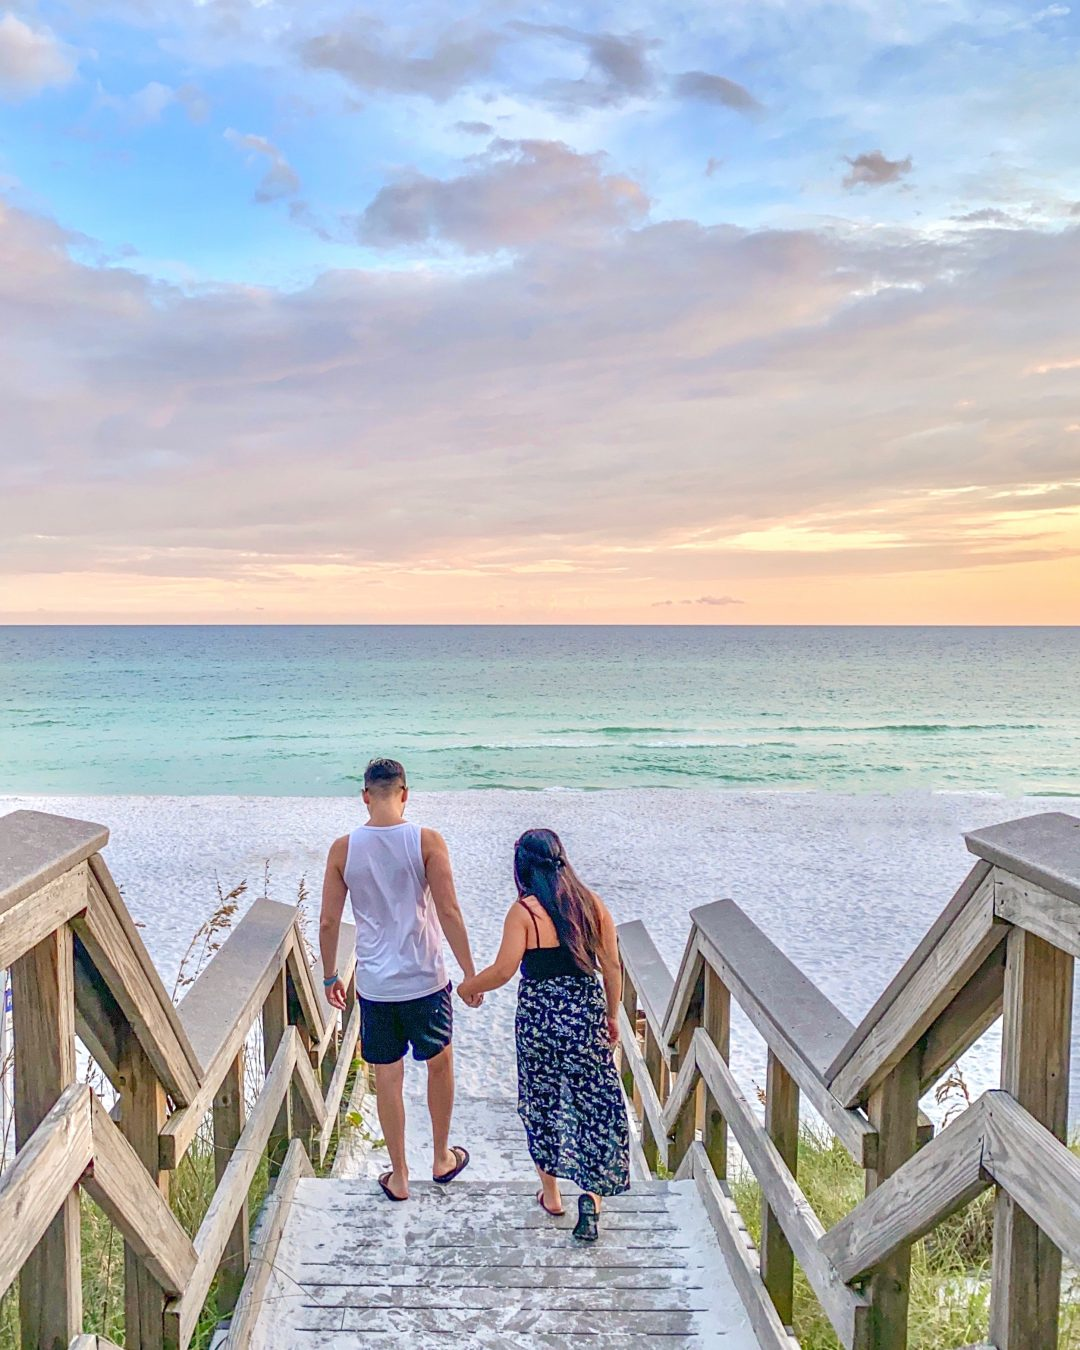 Destin Road Trip from Austin: The Ultimate Guide